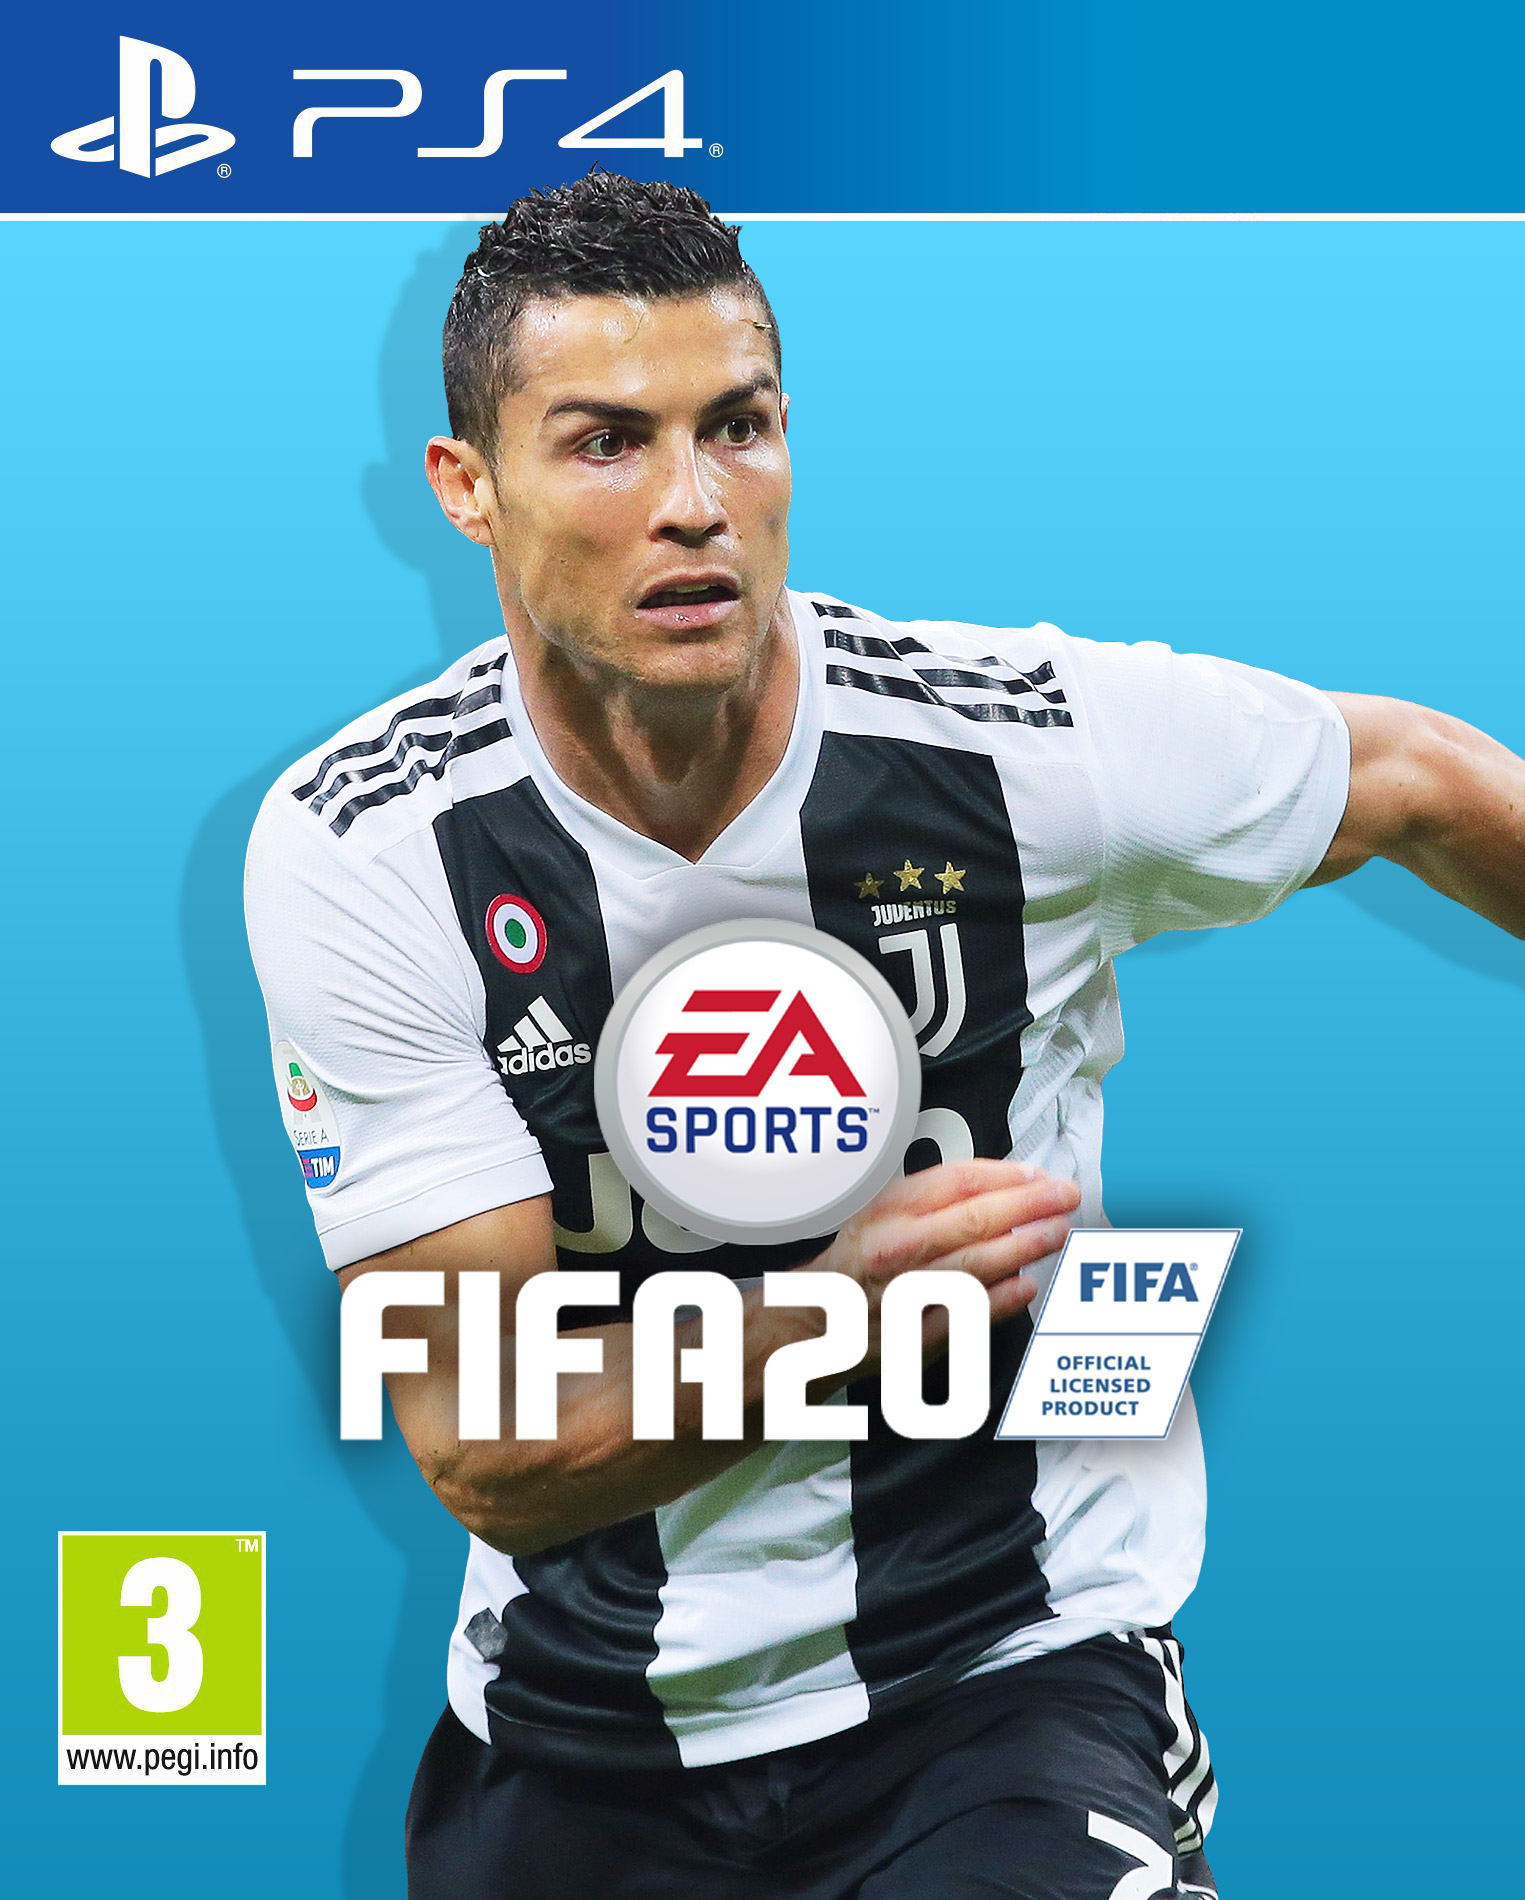 Fut match disabled dating